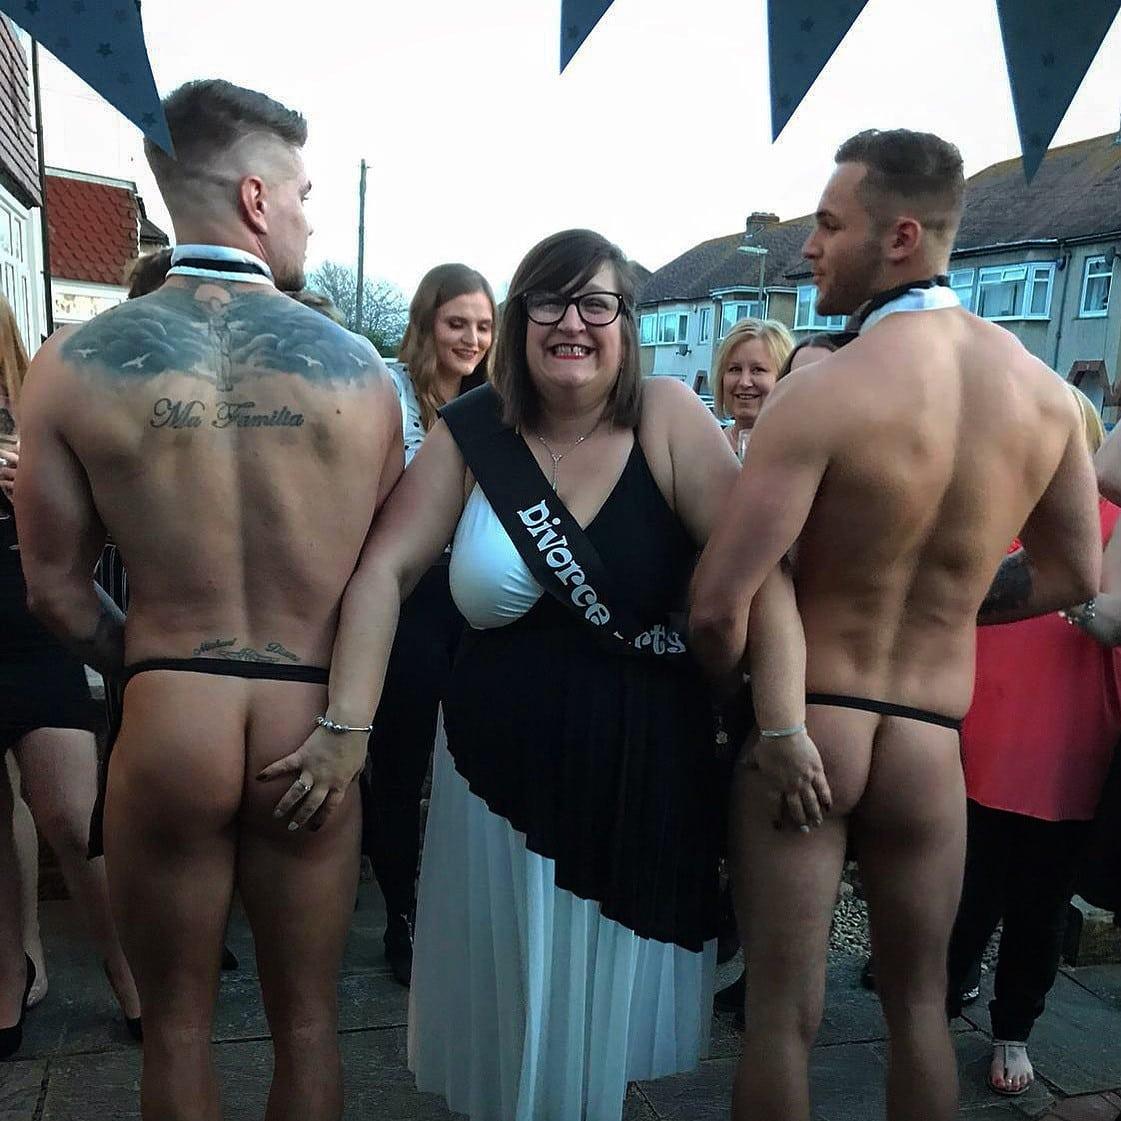 Divorce party with naked butlers Leeds